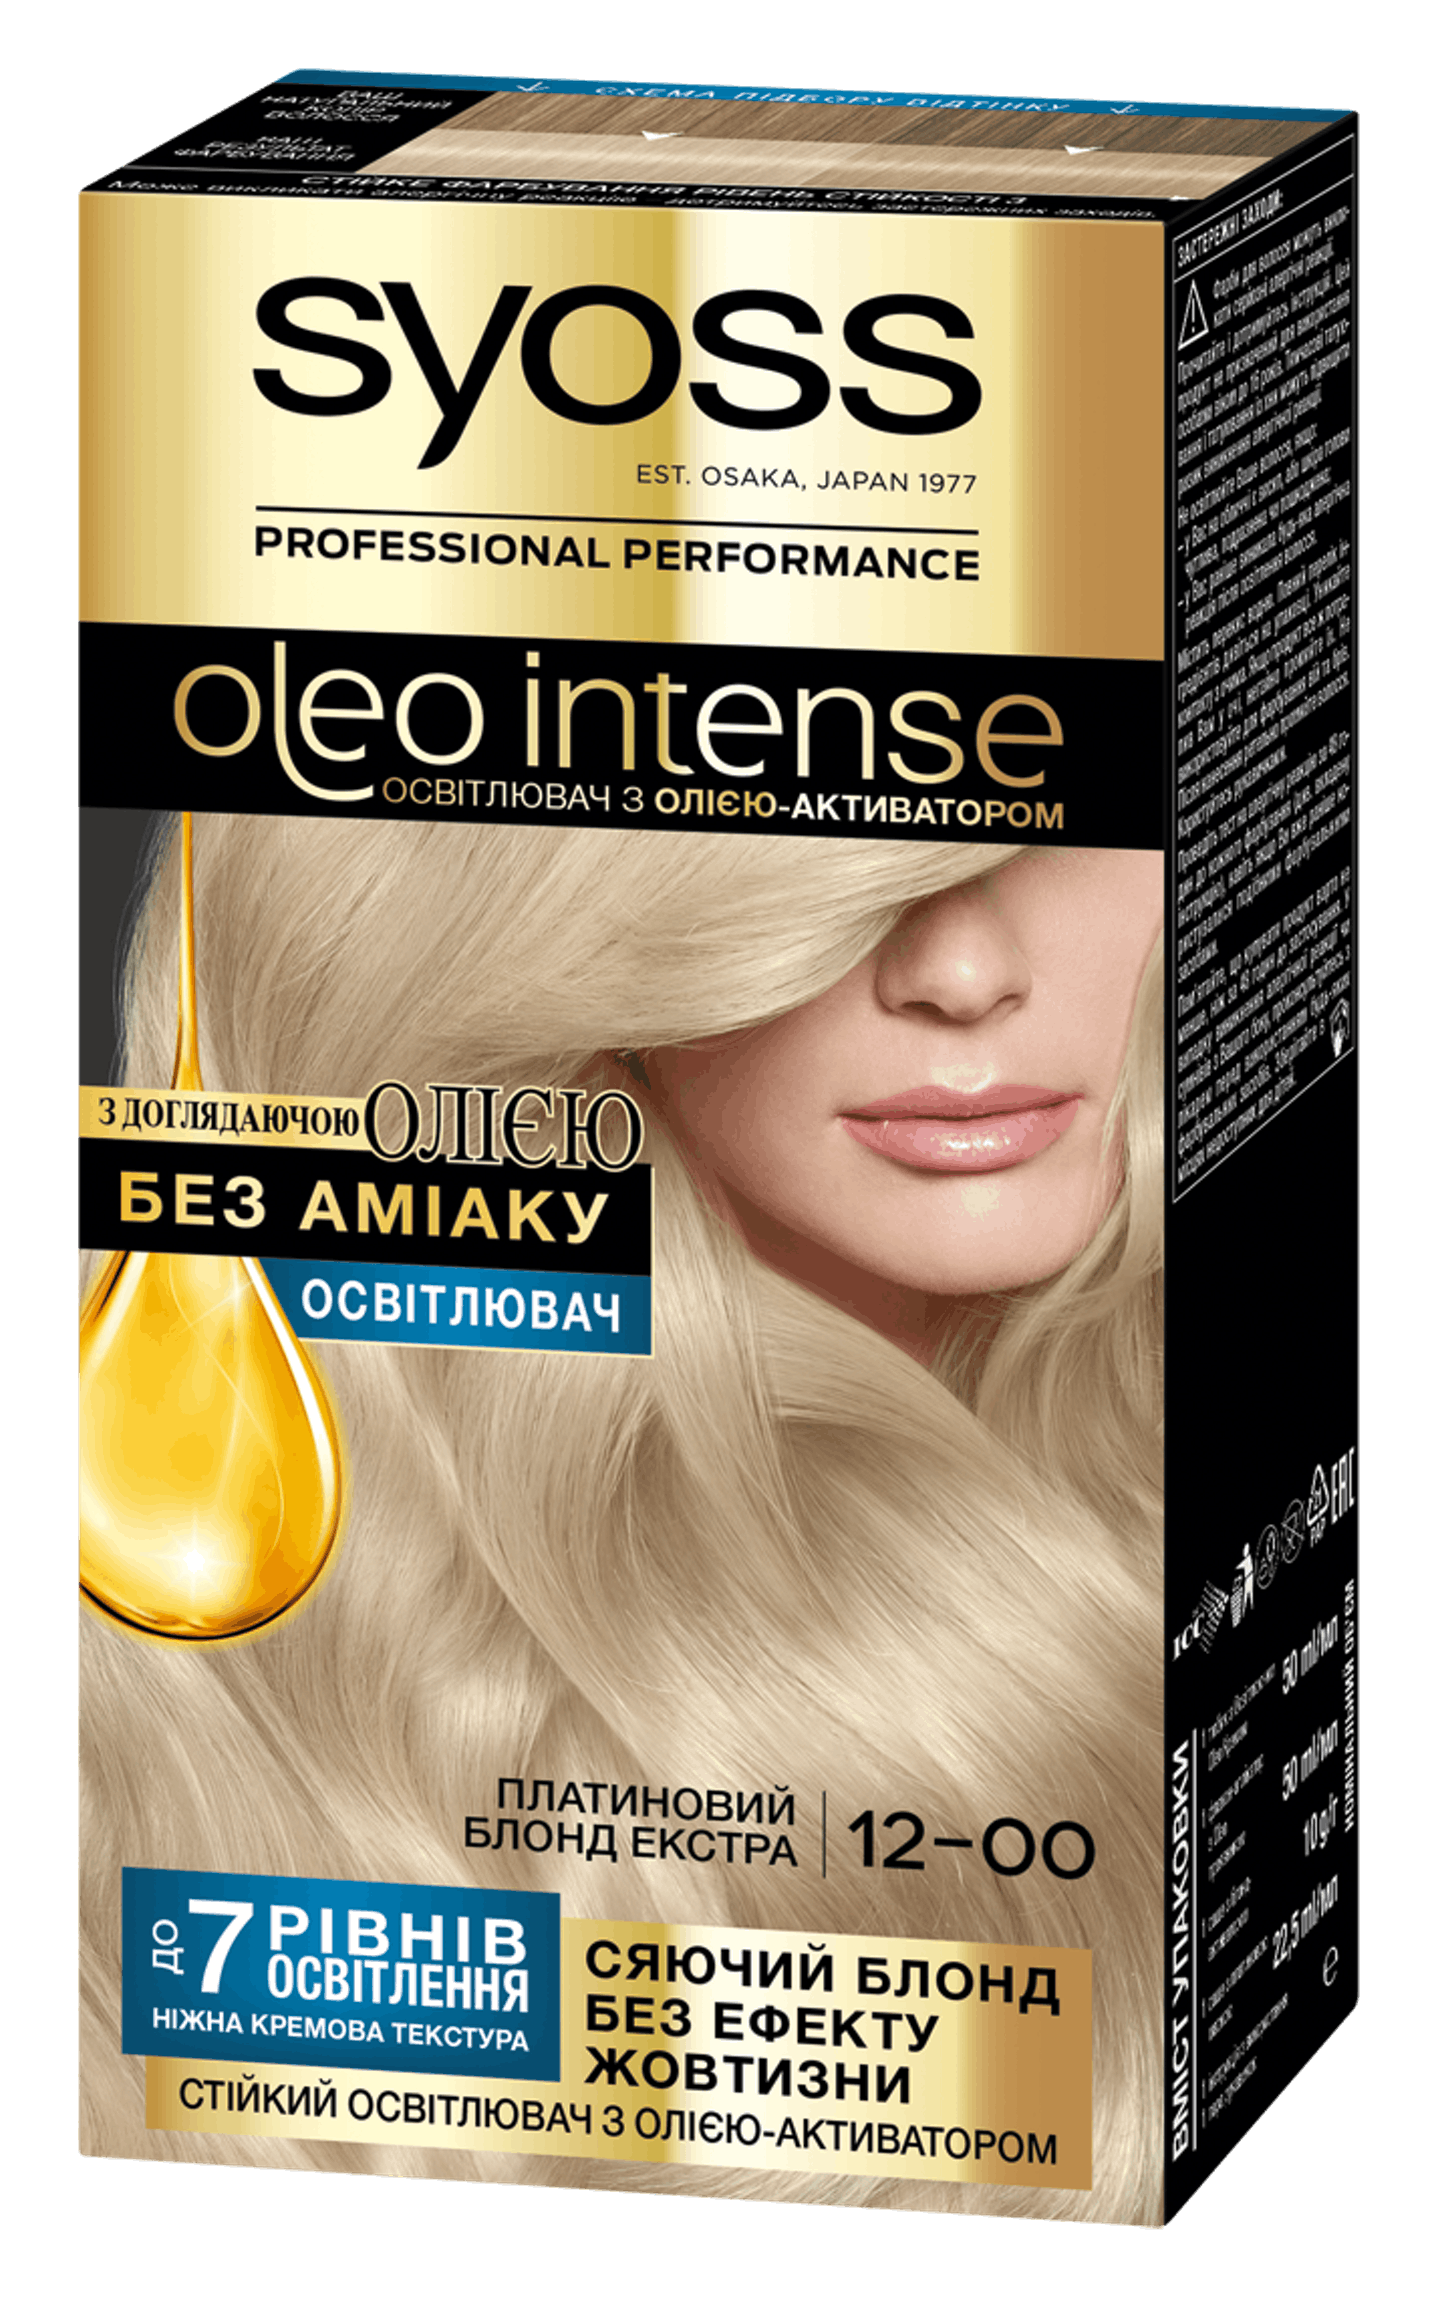 Syoss Oleo Intense Платиновий Блонд Екстра 12-00